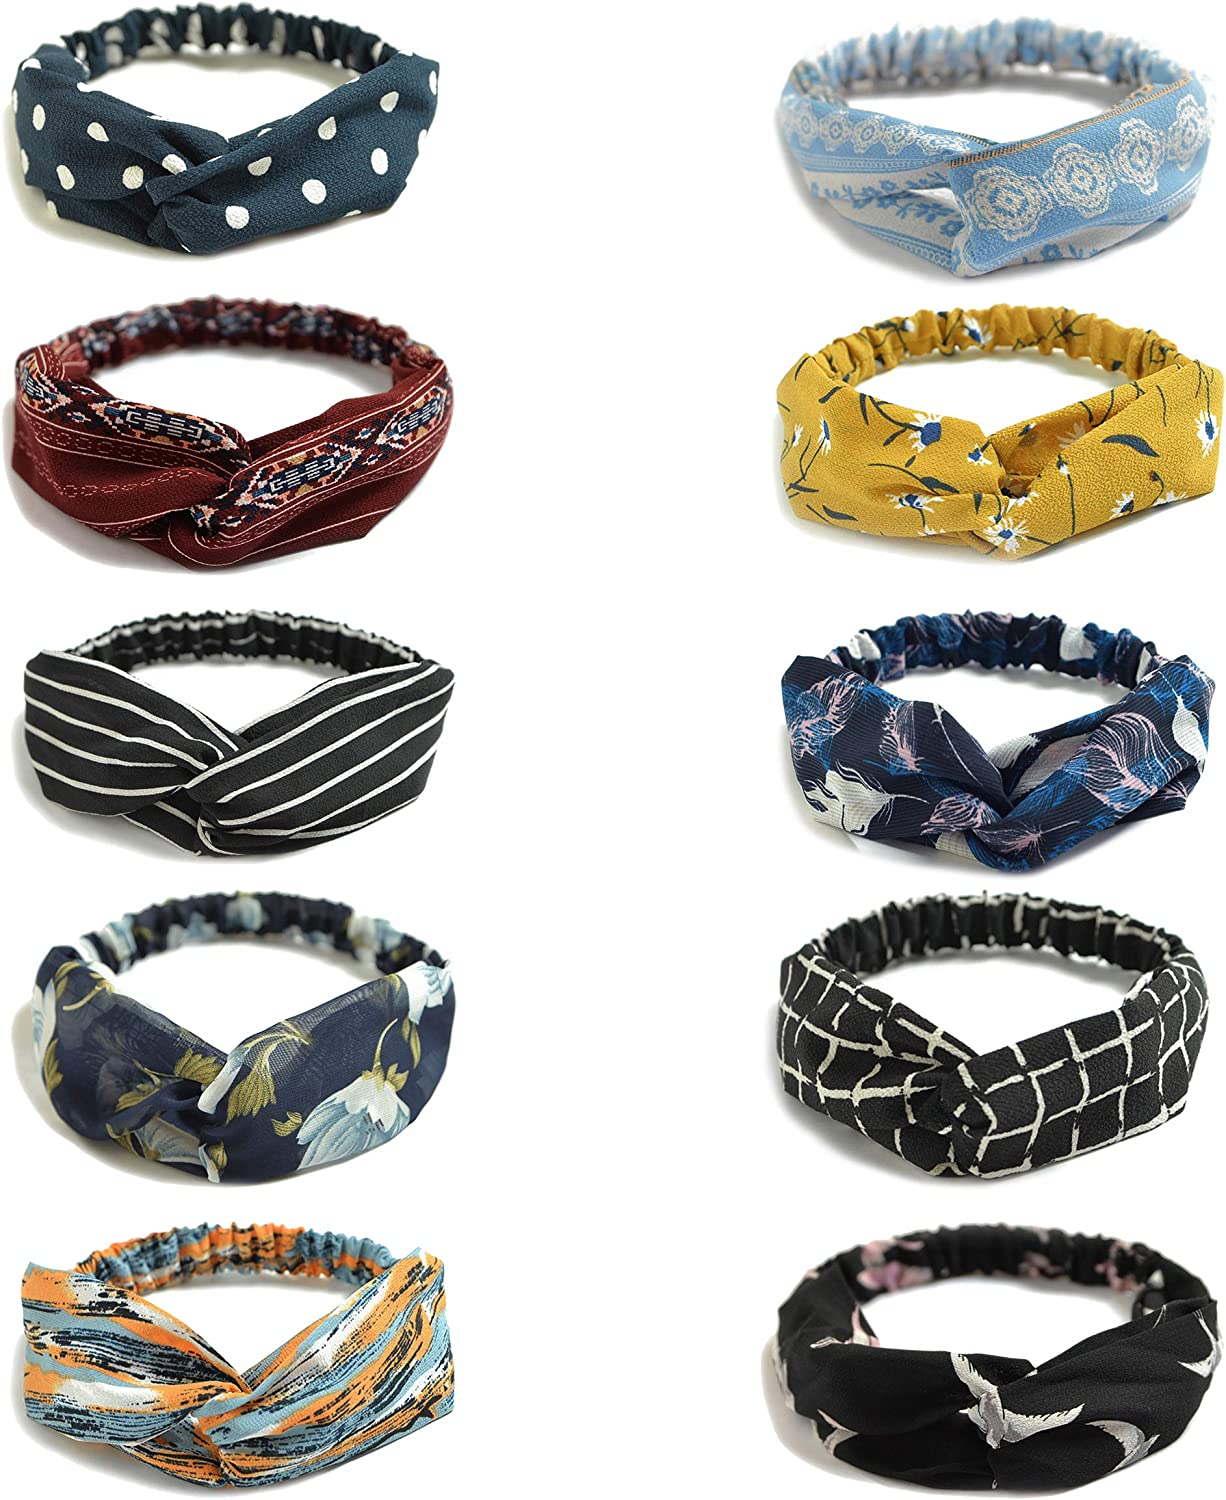 10 Pack Women's Headbands Boho Flower Printing Twisted Criss Cross Elastic Hair Band Accessories B at  Women's Clothing store